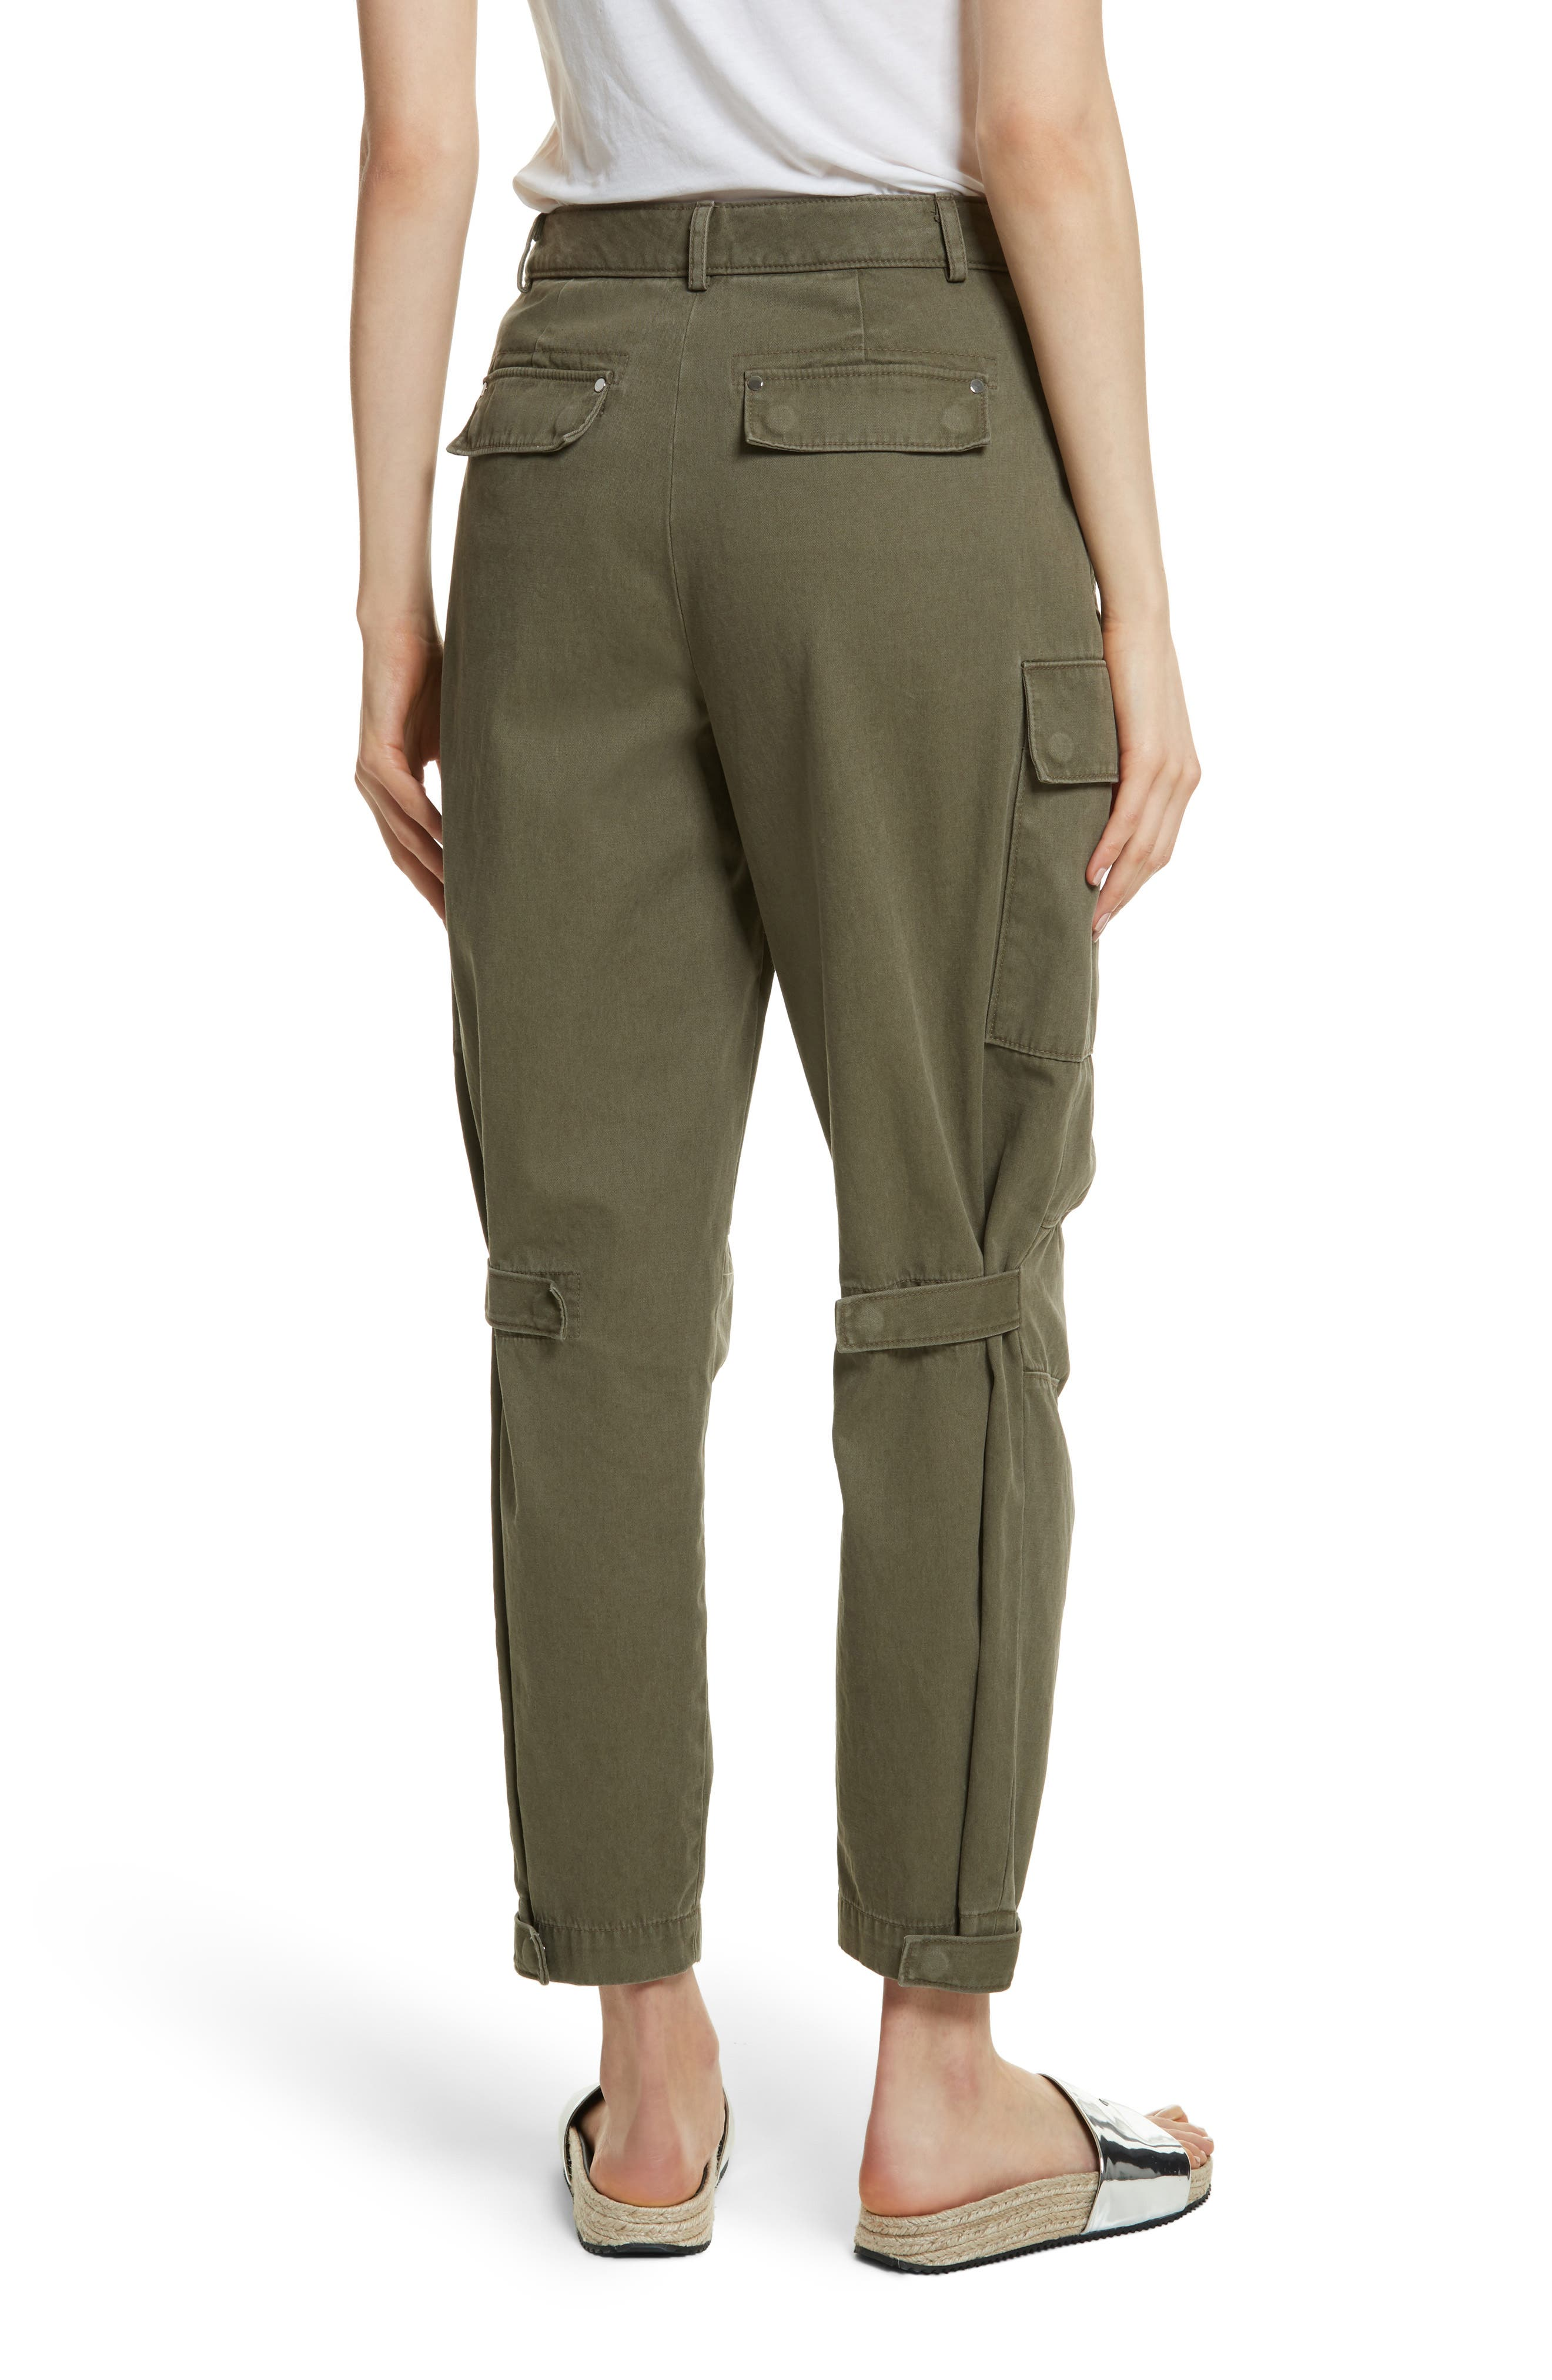 T by Alexander Wang Twill Cargo Pants,                             Alternate thumbnail 2, color,                             309